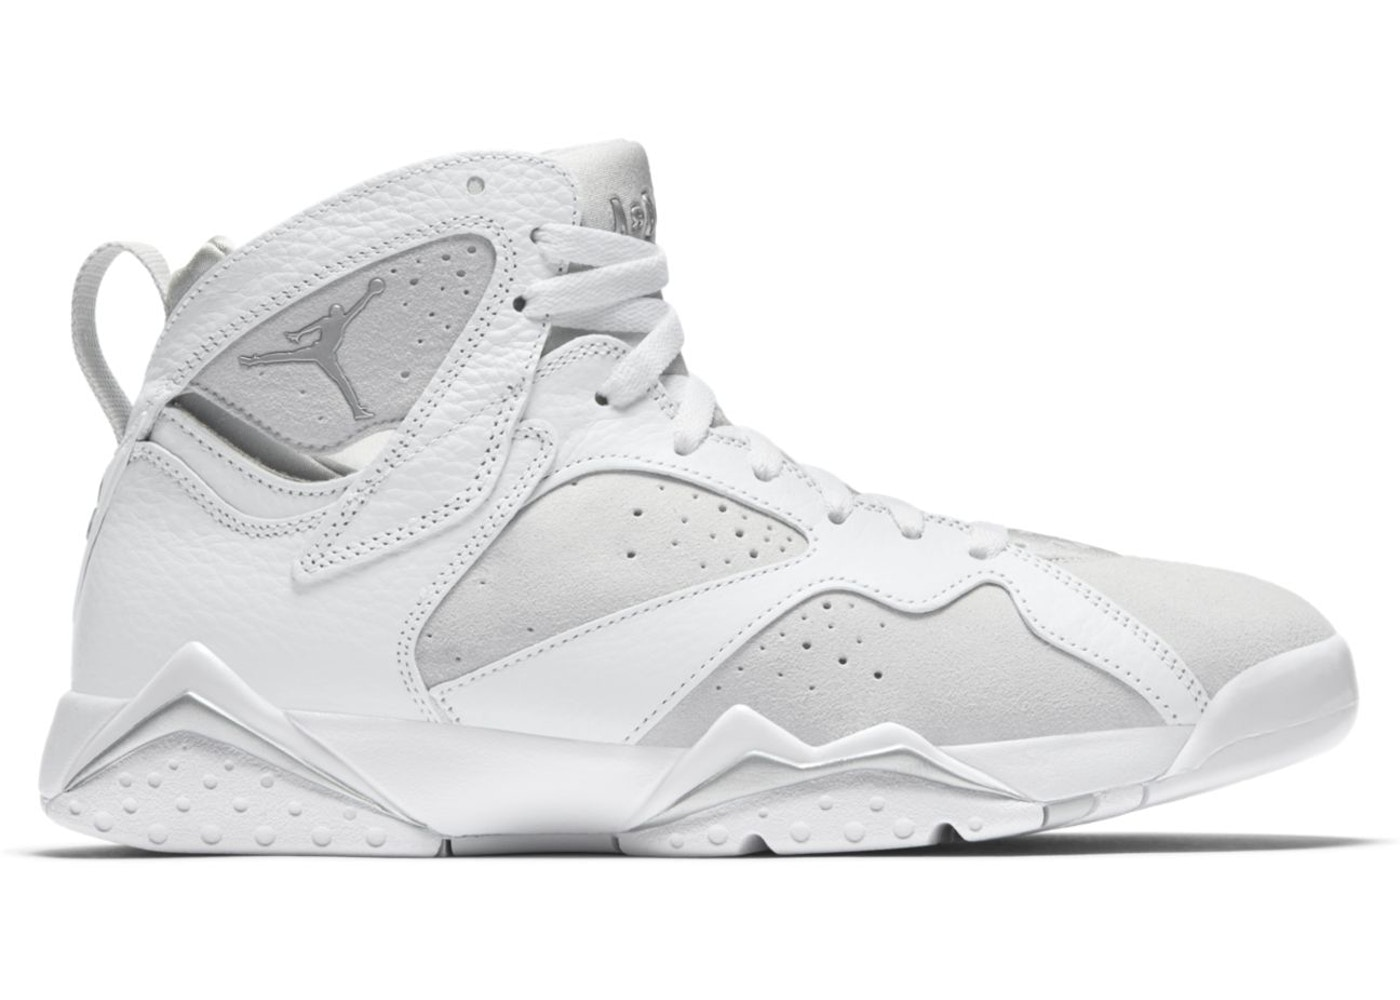 buy online 79cfc e6476 Jordan 7 Retro Pure Platinum